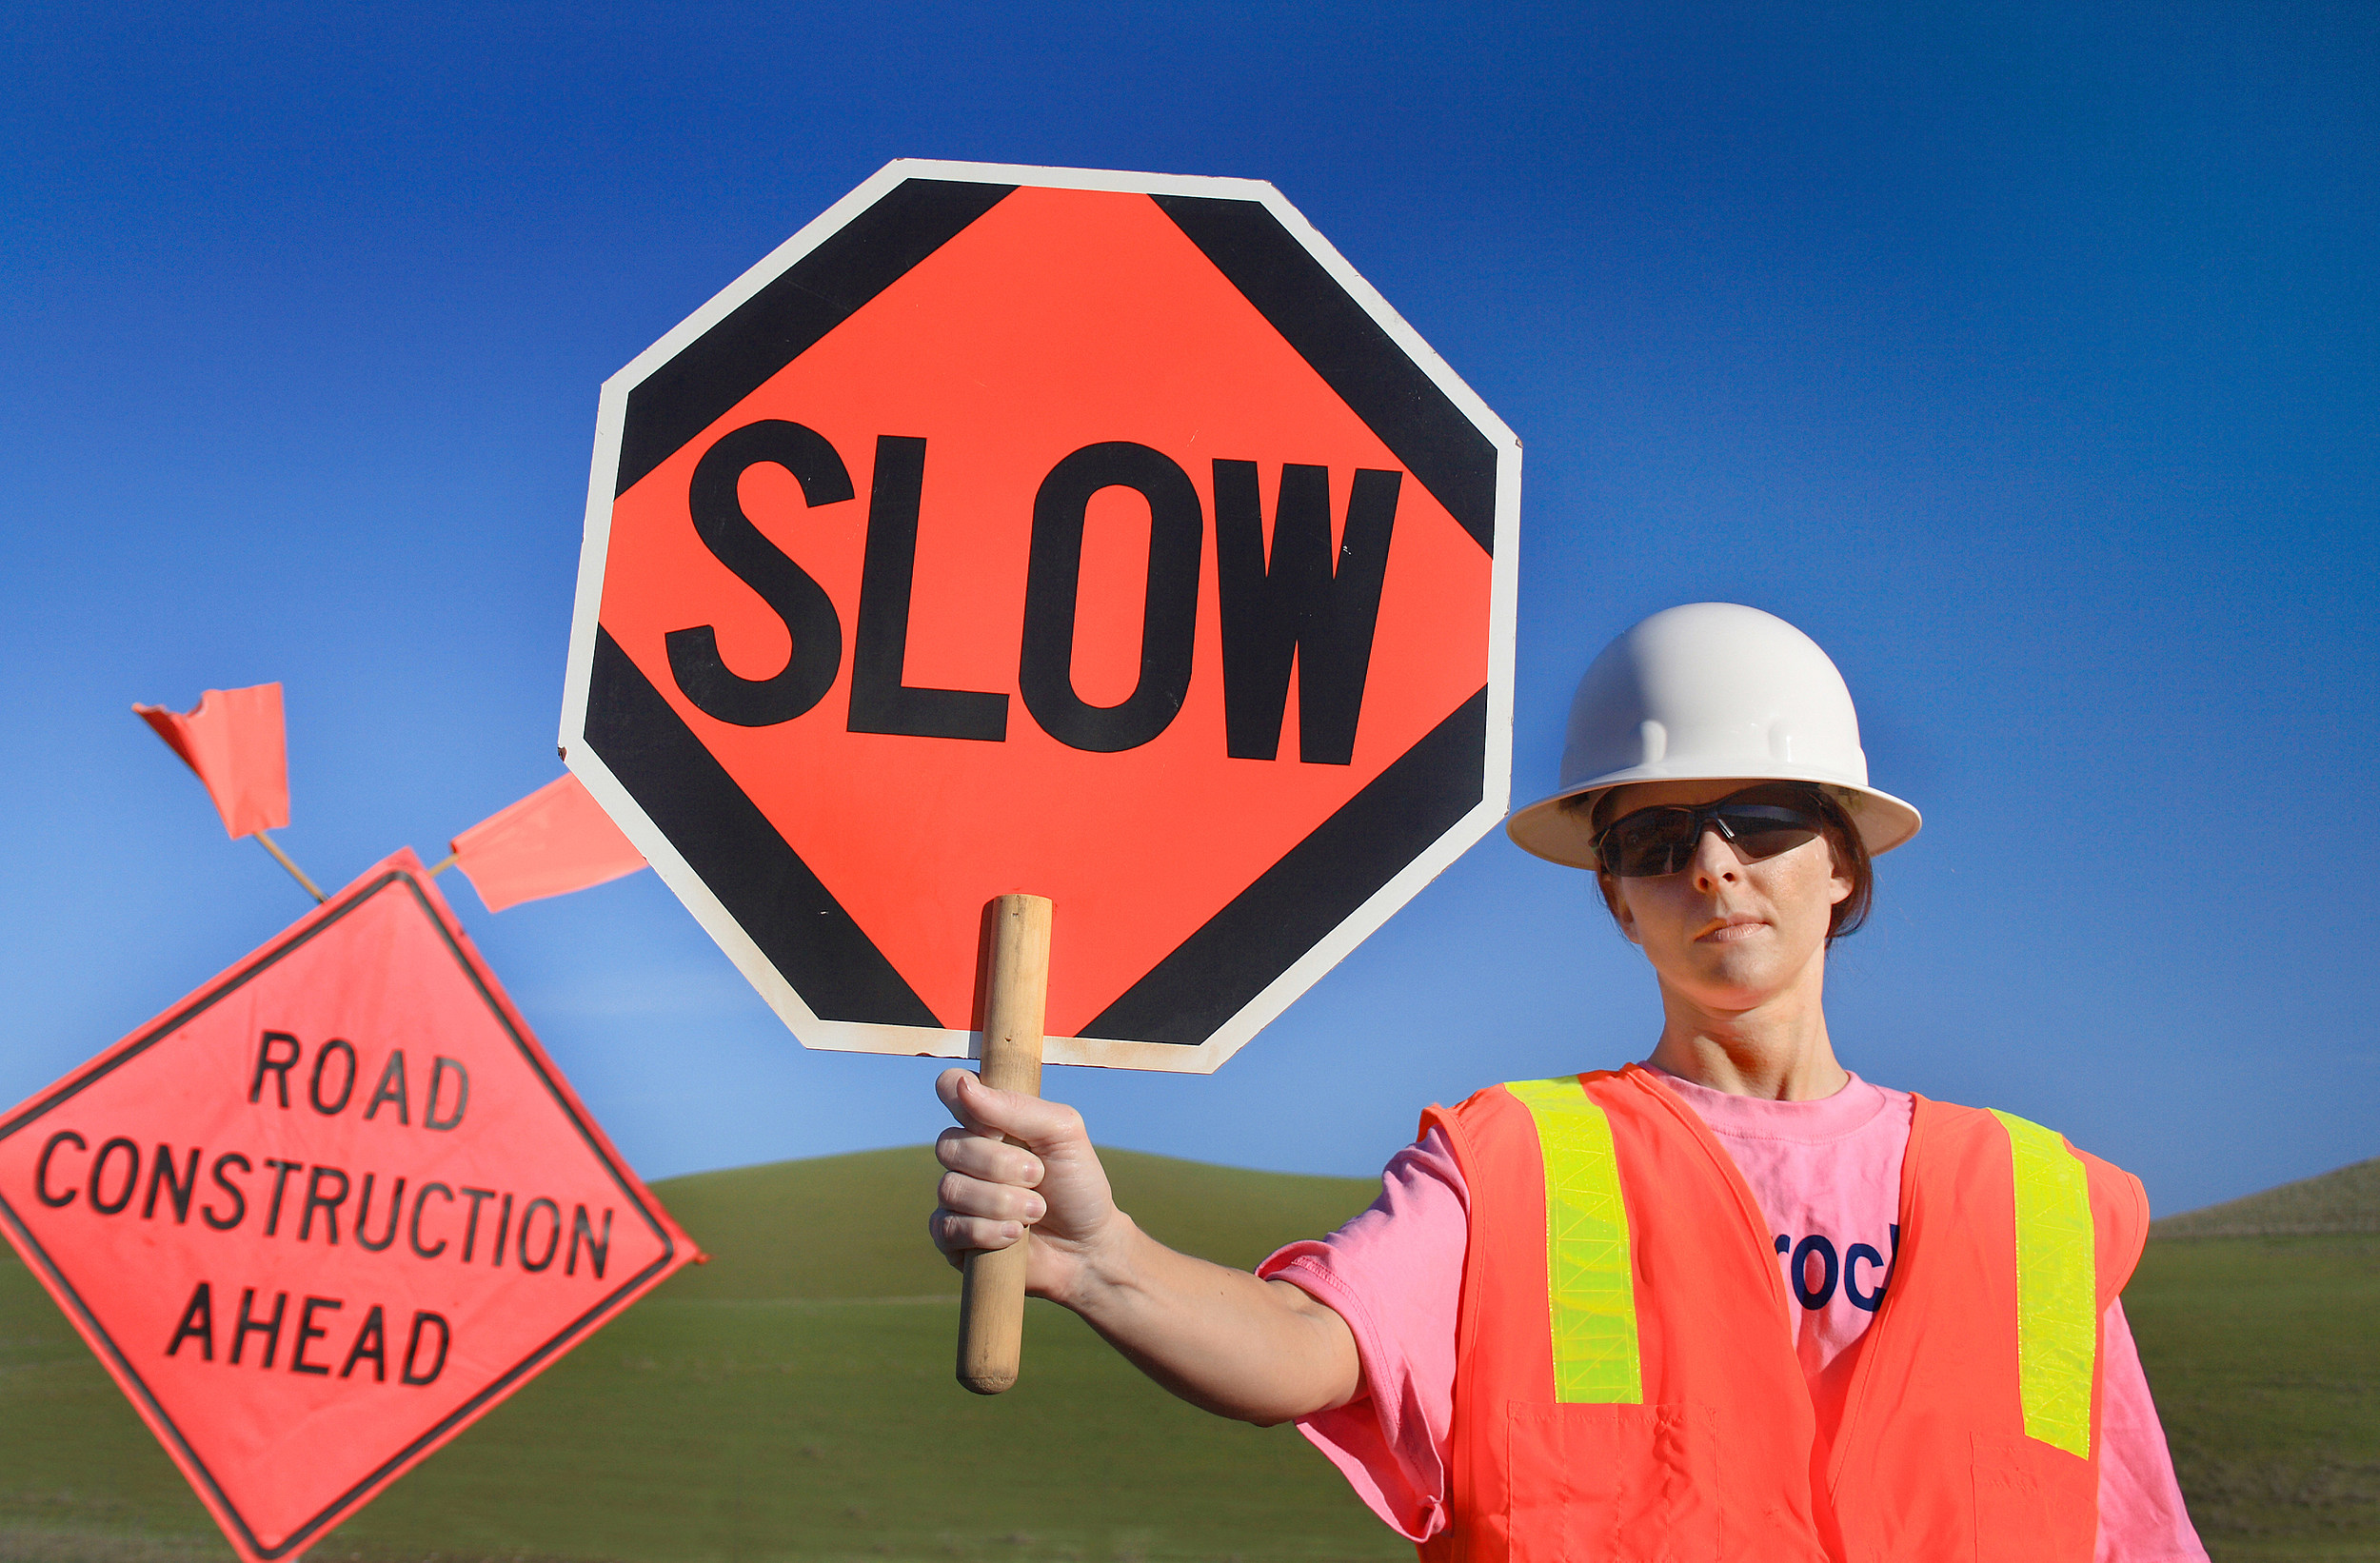 Woman Construction Worker with Slow Sign